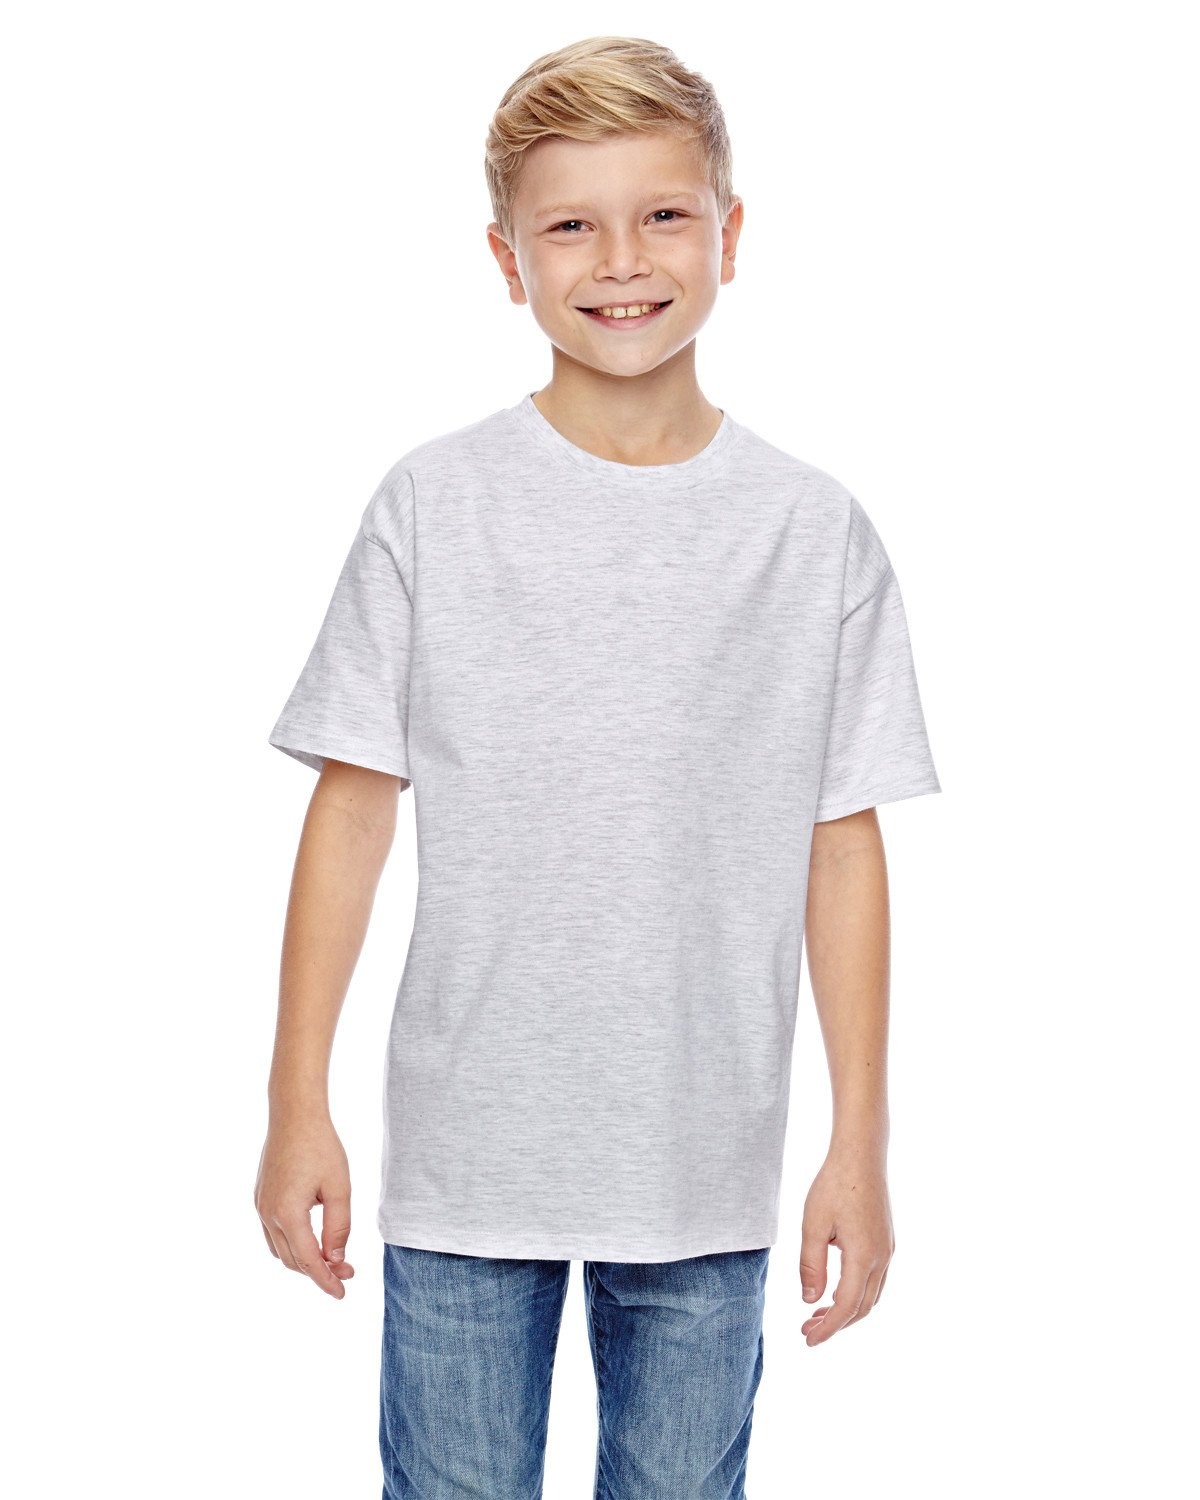 Hanes - 498Y - Youth 4.5 oz., 100% Ringspun Cotton nano-T® T-Shirt